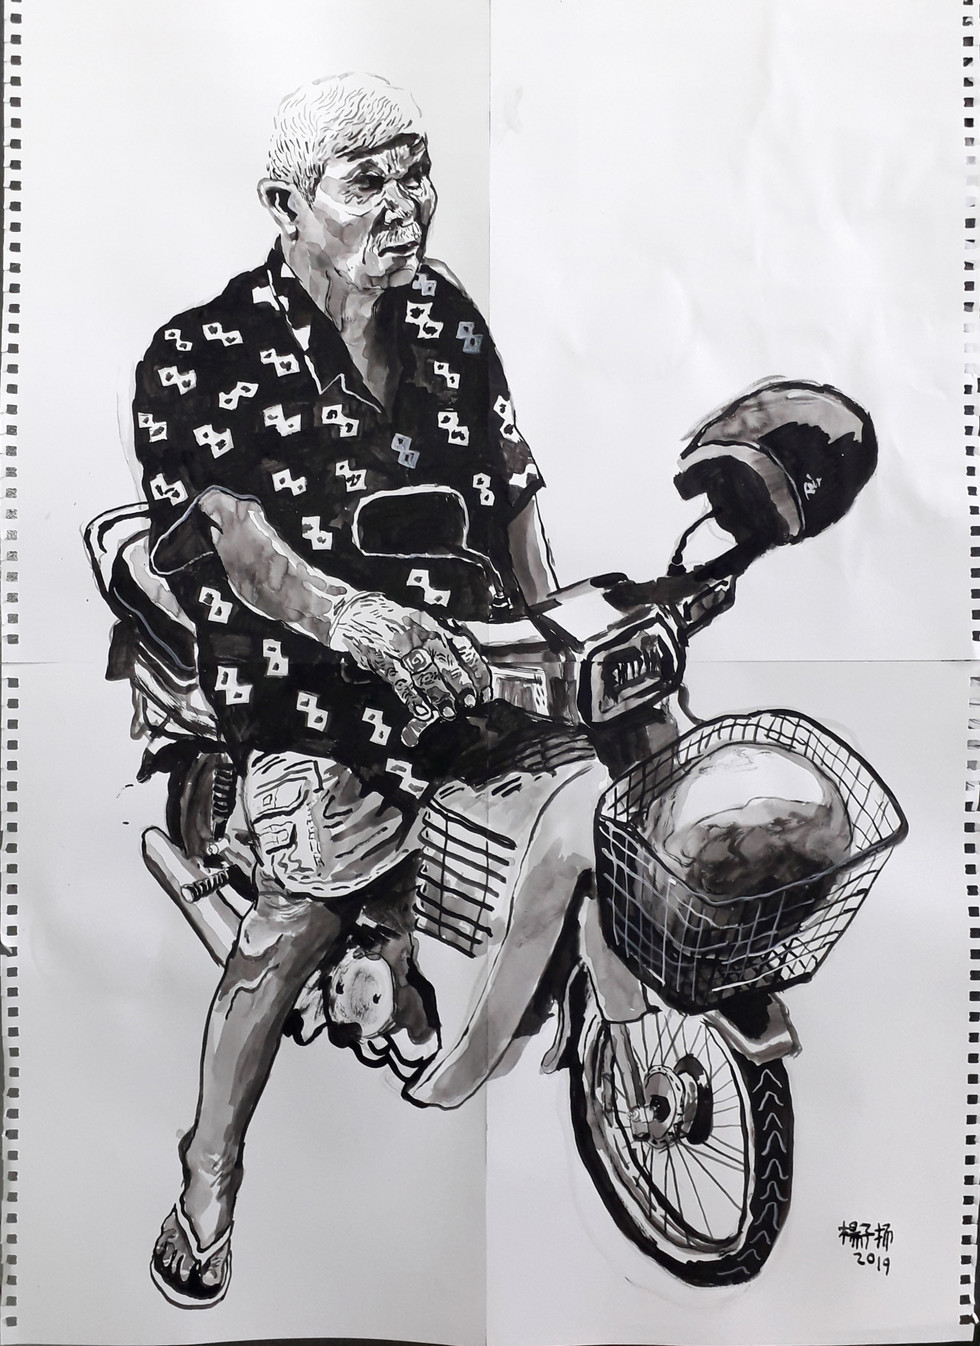 Man on a Bike, 2019, Acrylic and watercolour on paper, 84 x 59.4cm  Private Collection, Malaysia